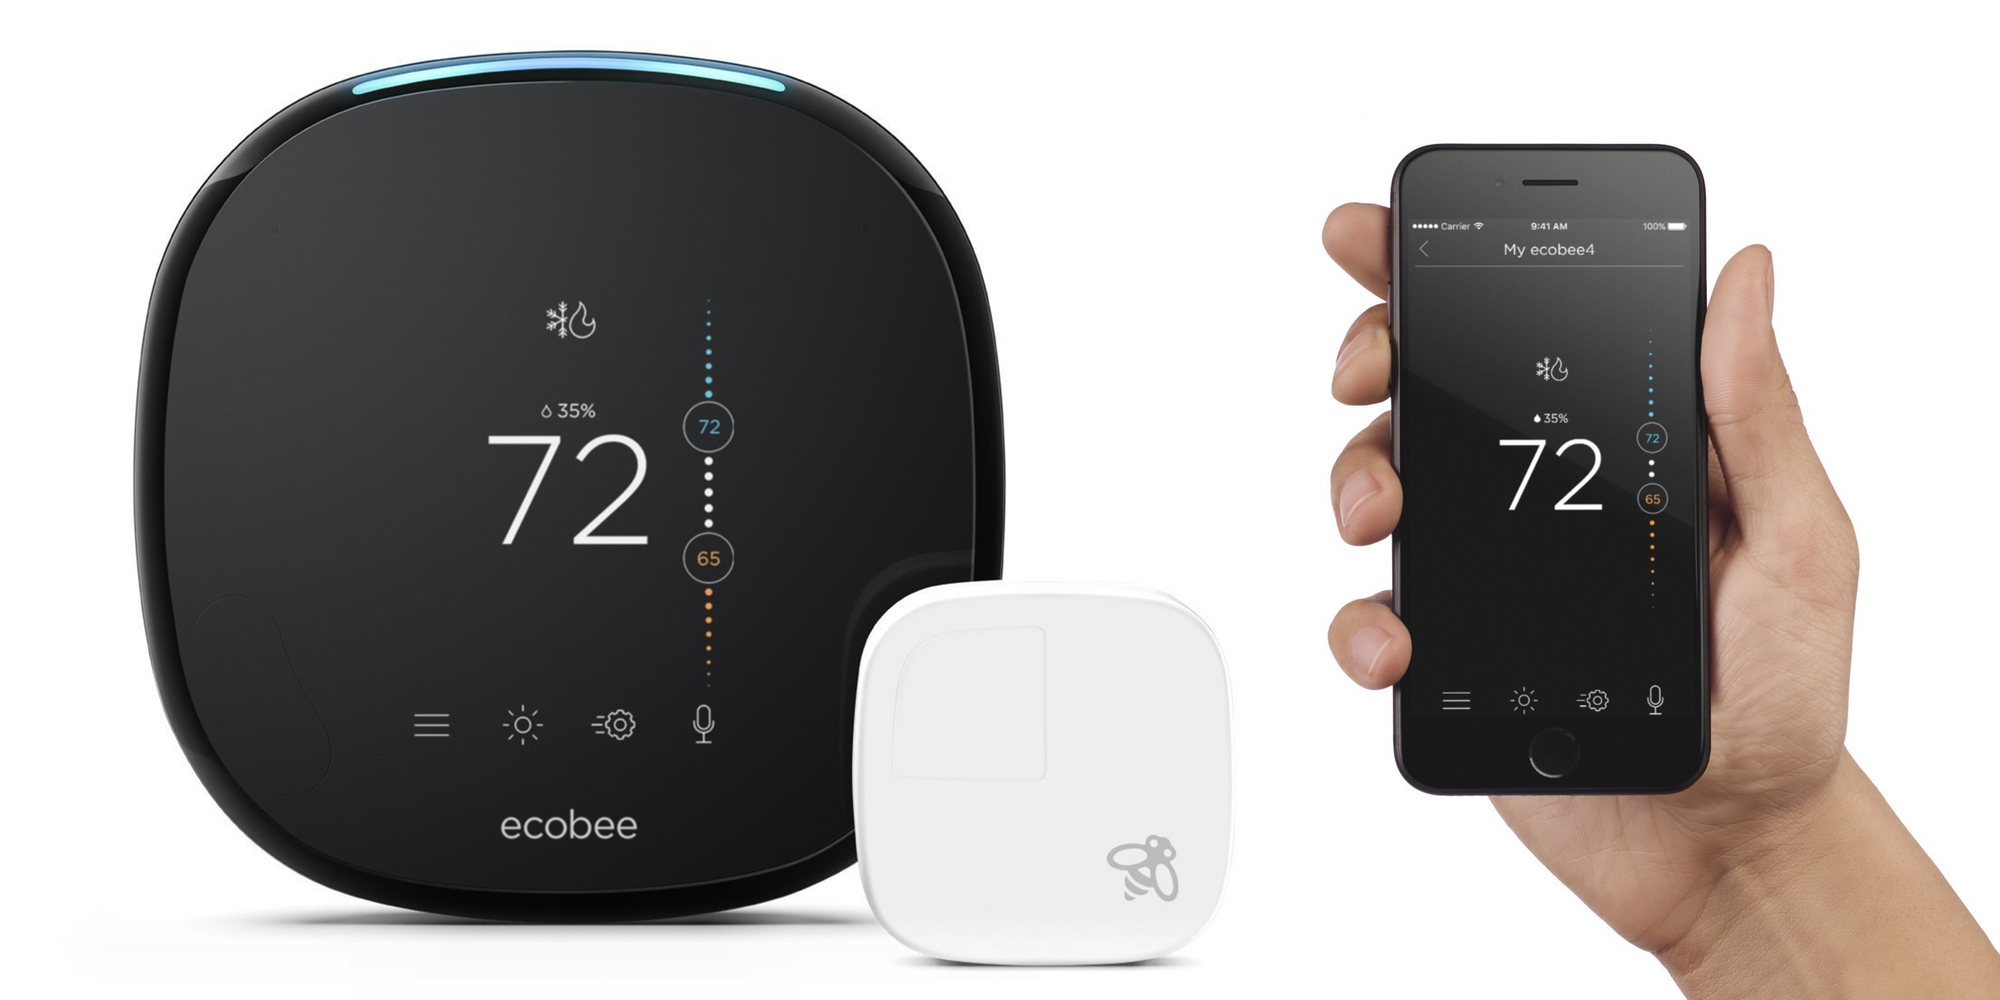 Grab The Ecobee4 Smart Homekit Thermostat At A New All